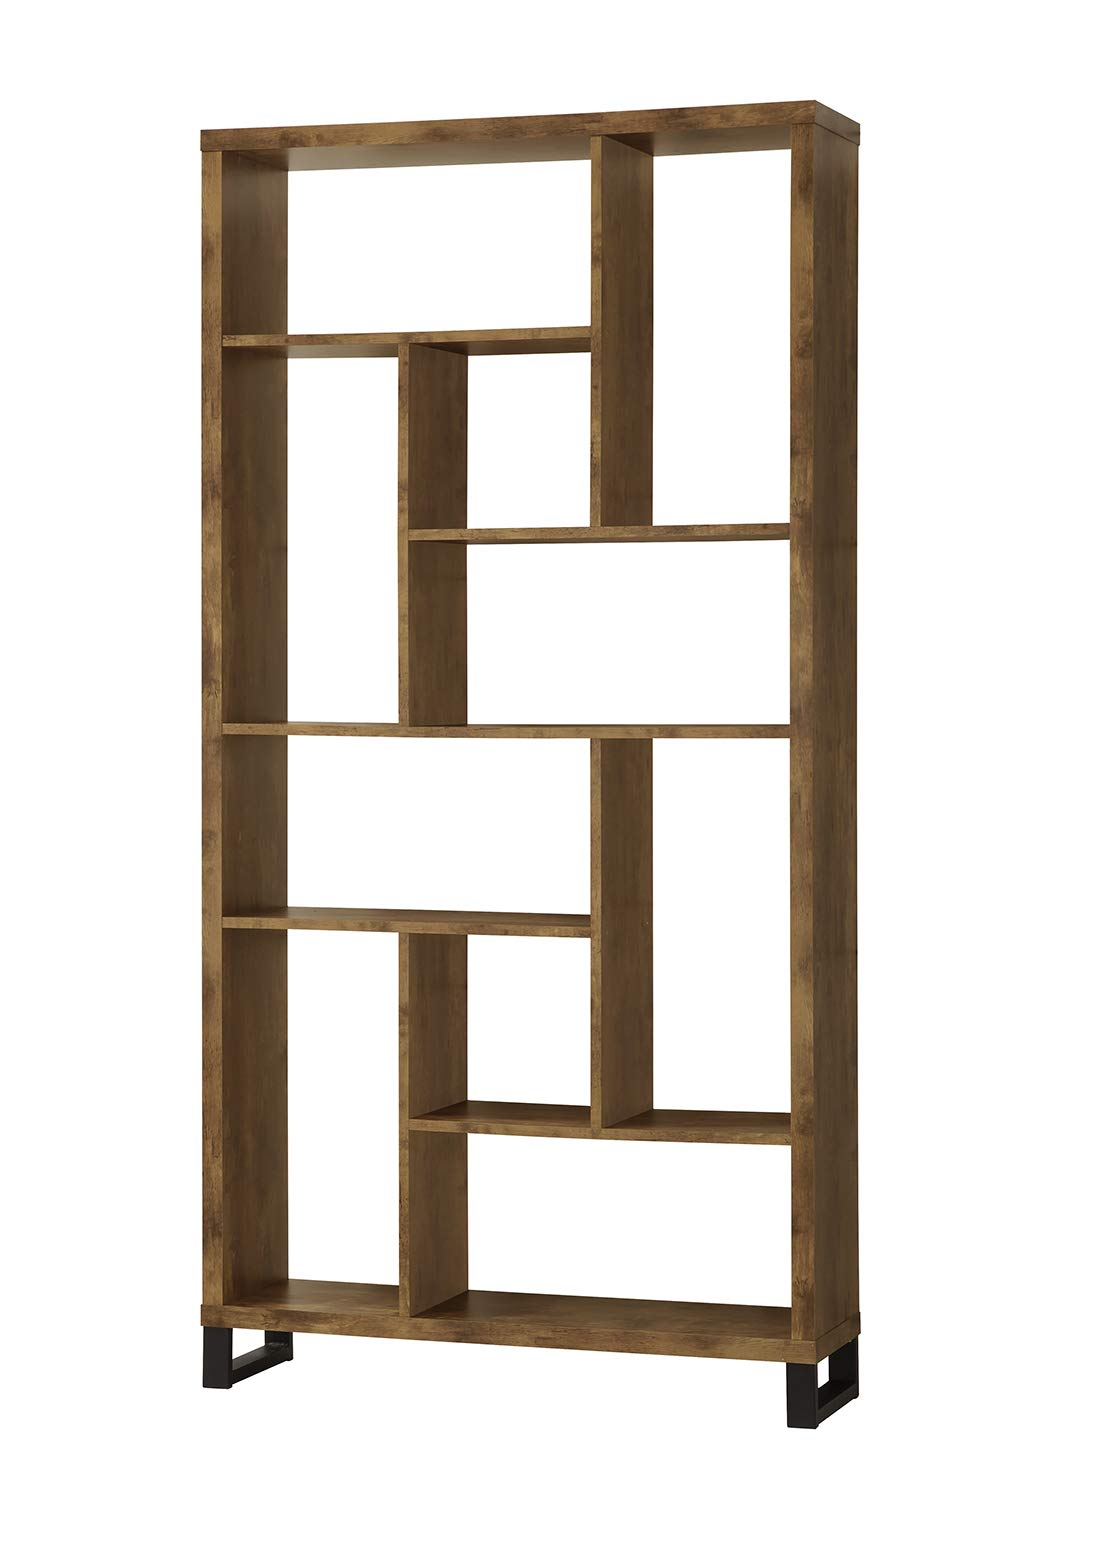 Coaster Home Furnishings 801236 Coaster Industrial Rustic Antique Nutmeg Open Bookcase with Different Sized Cubbies, by Coaster Home Furnishings